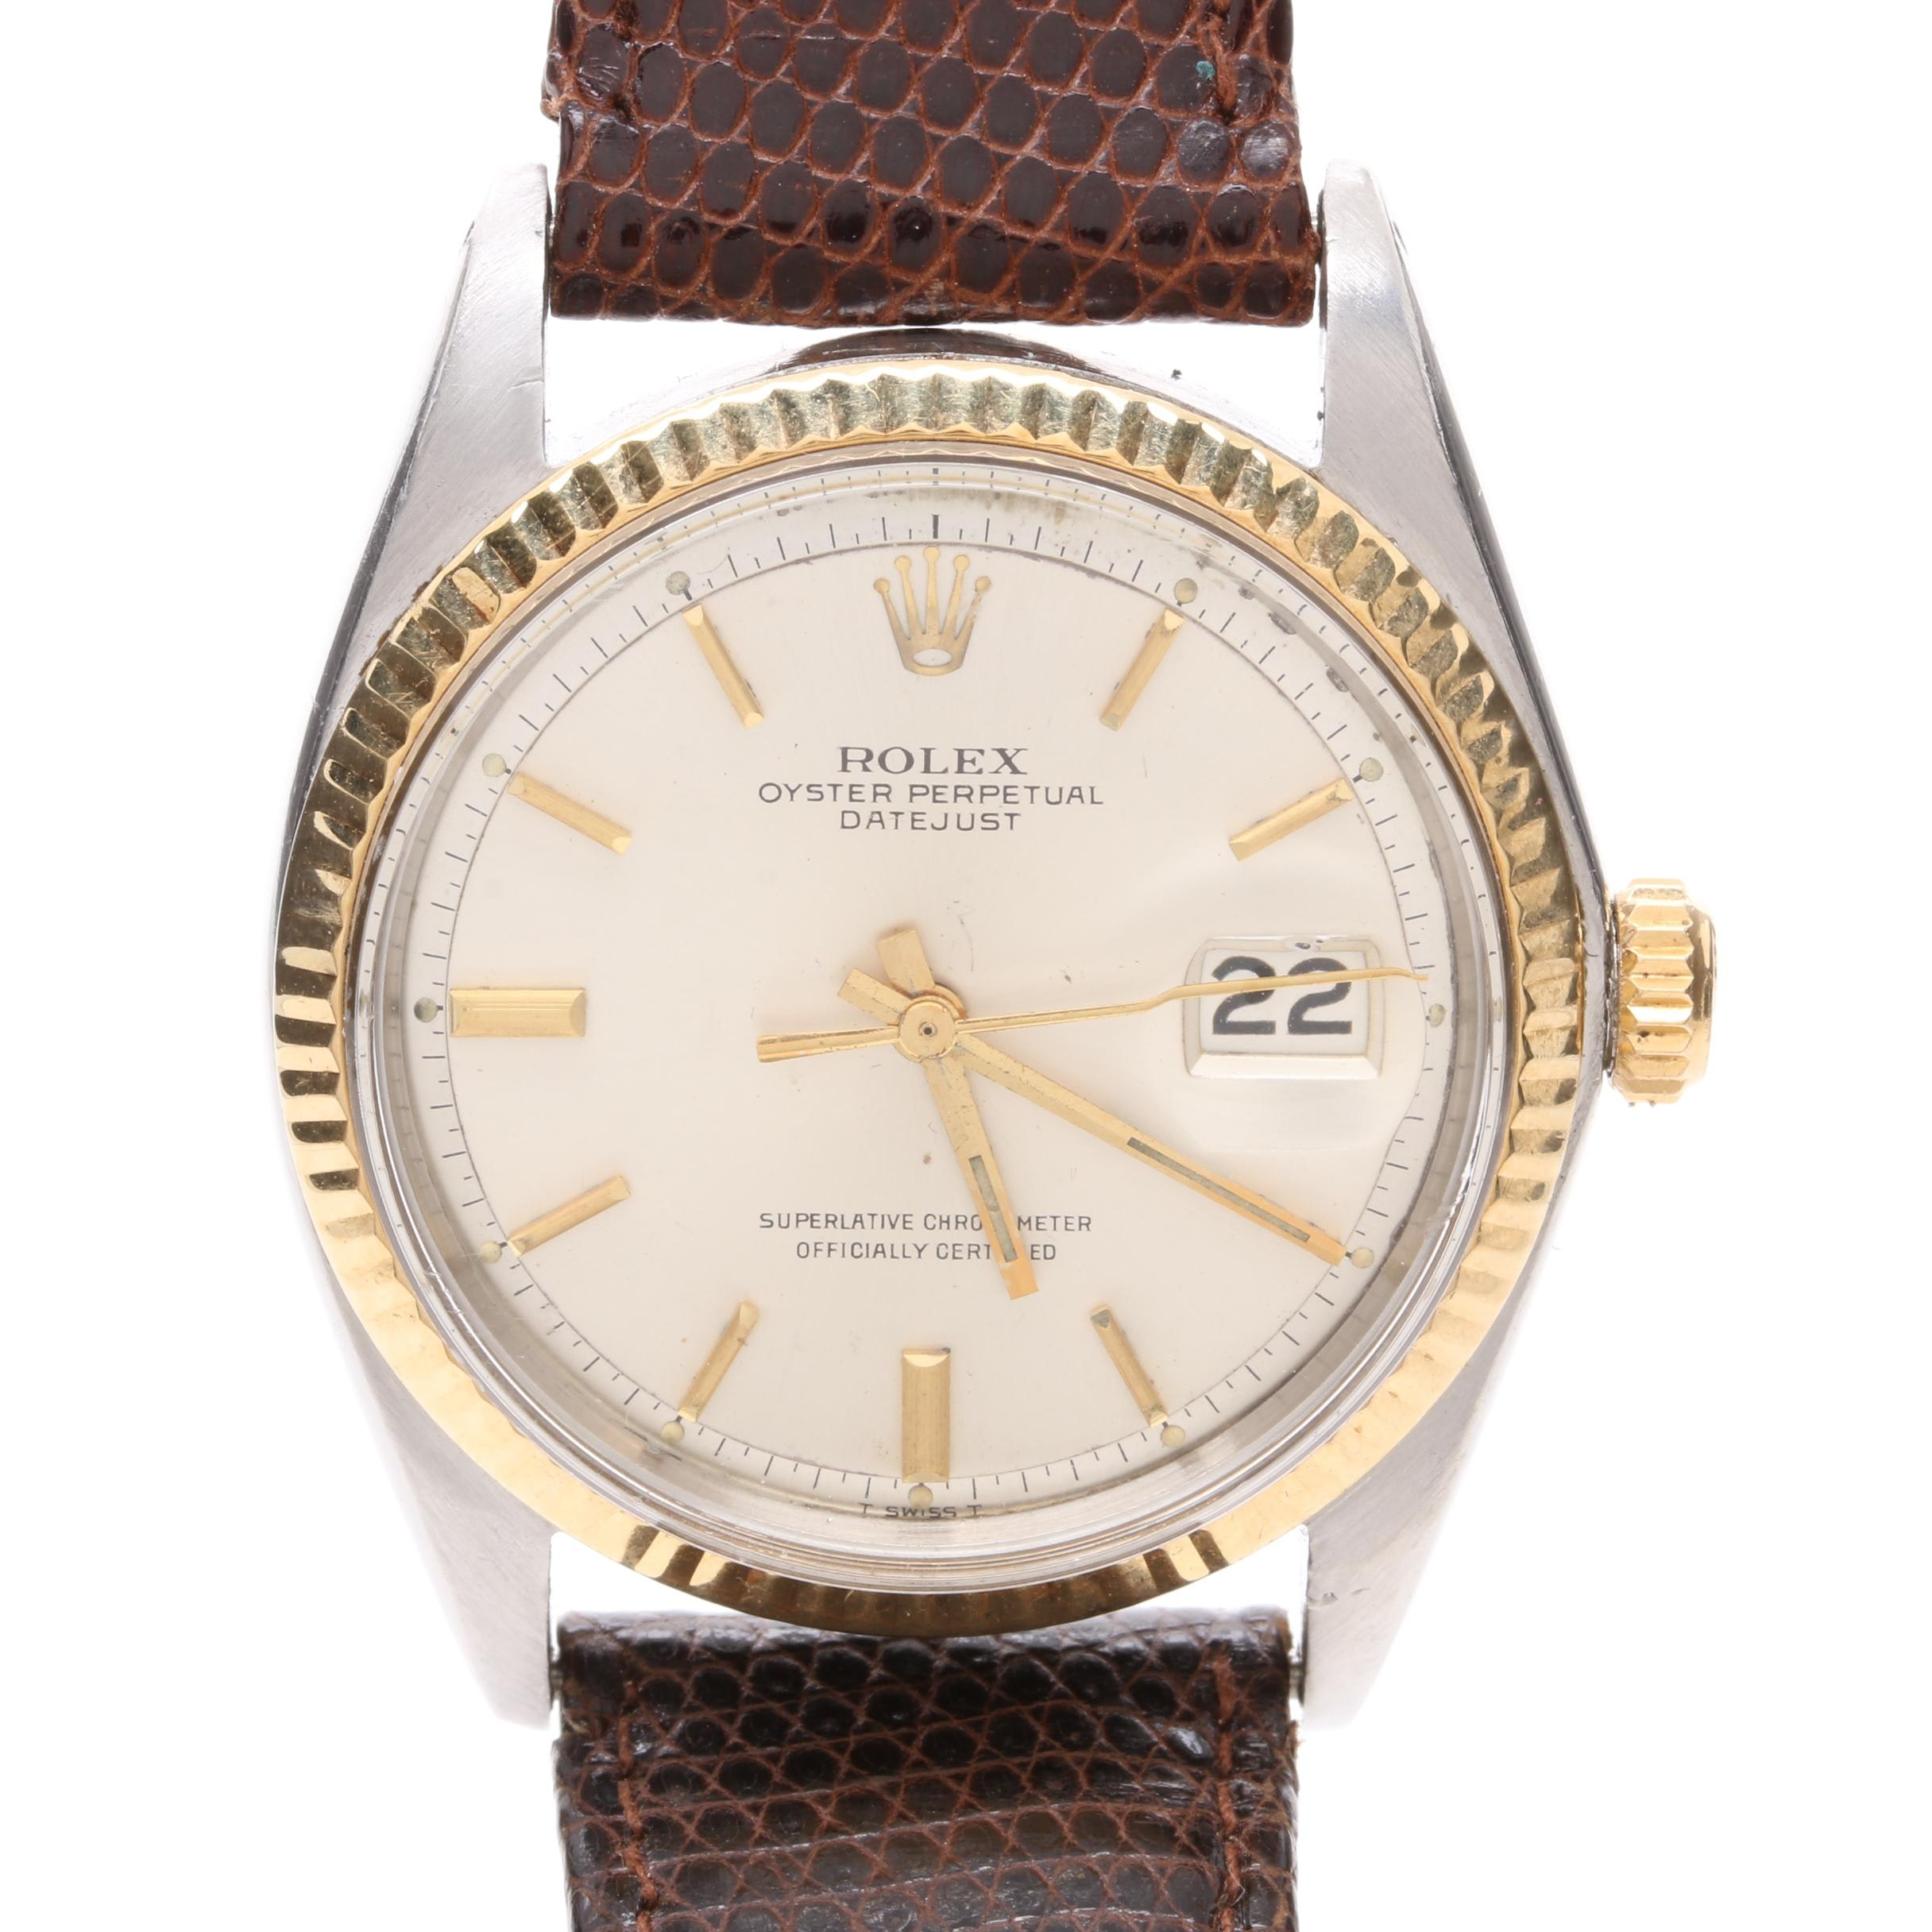 Circa 1969 Rolex Stainless Steel and 18K Yellow Gold Datejust Wristwatch